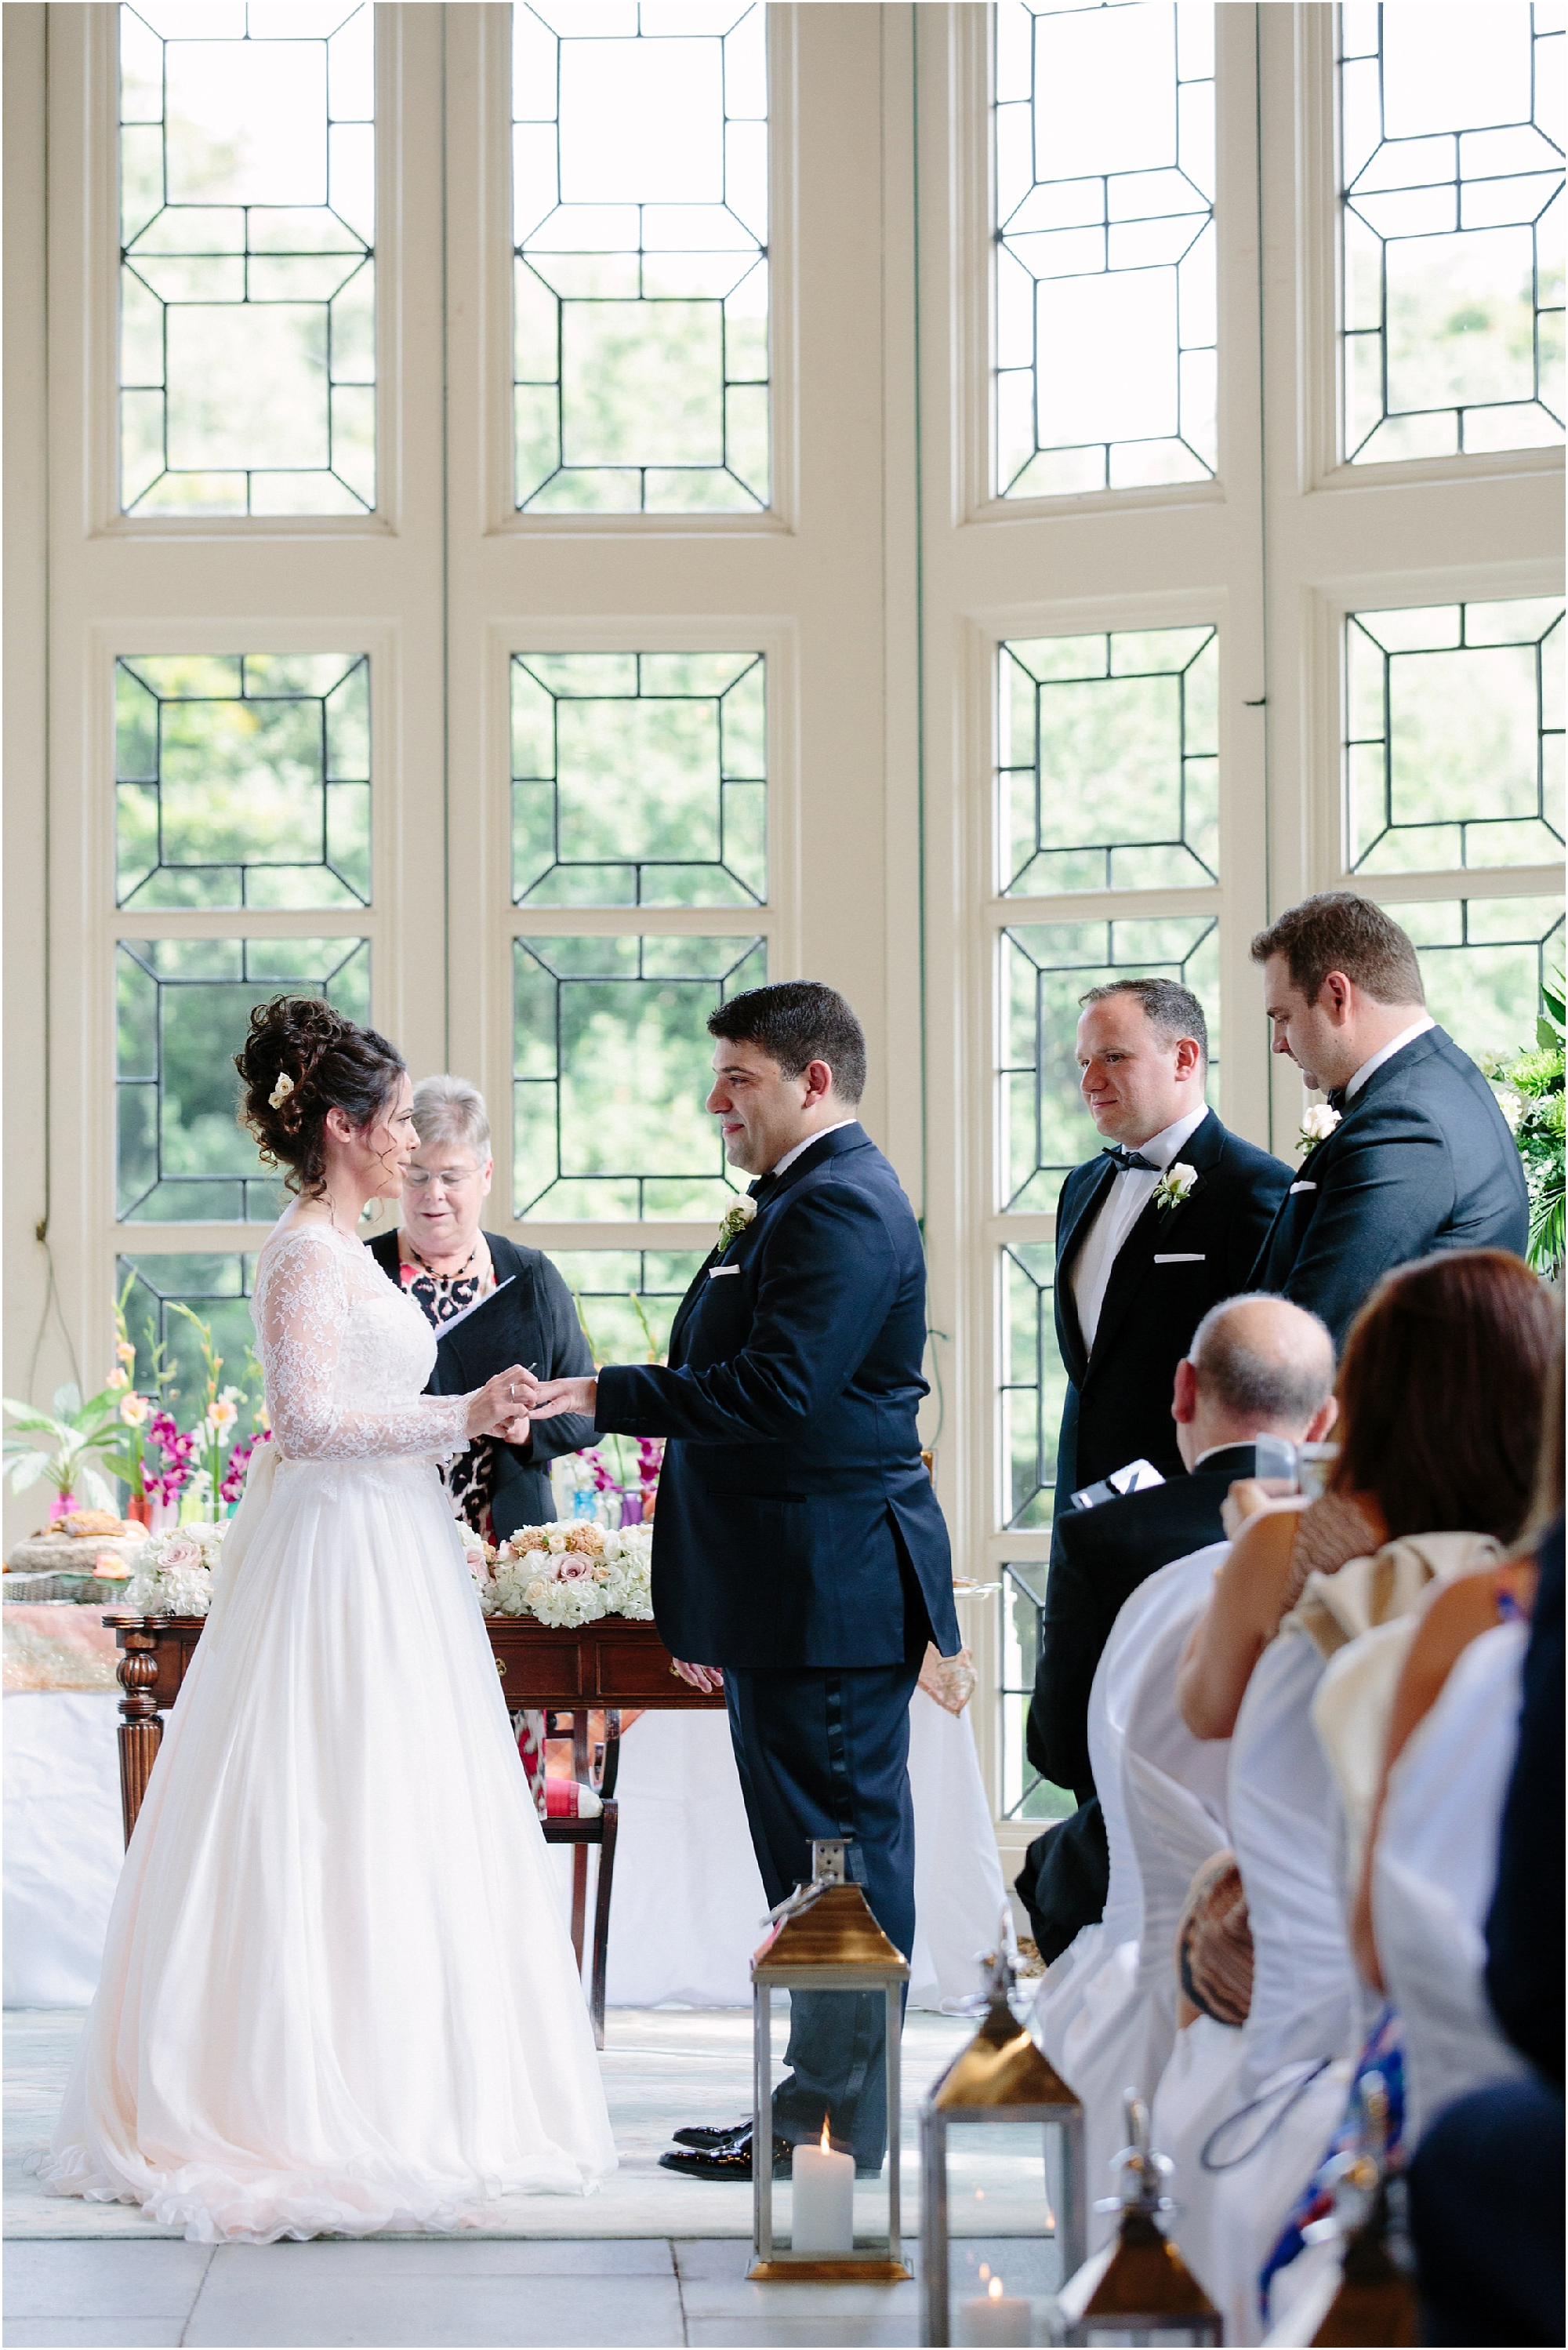 your wedding ceremony at Highcliffe Castle